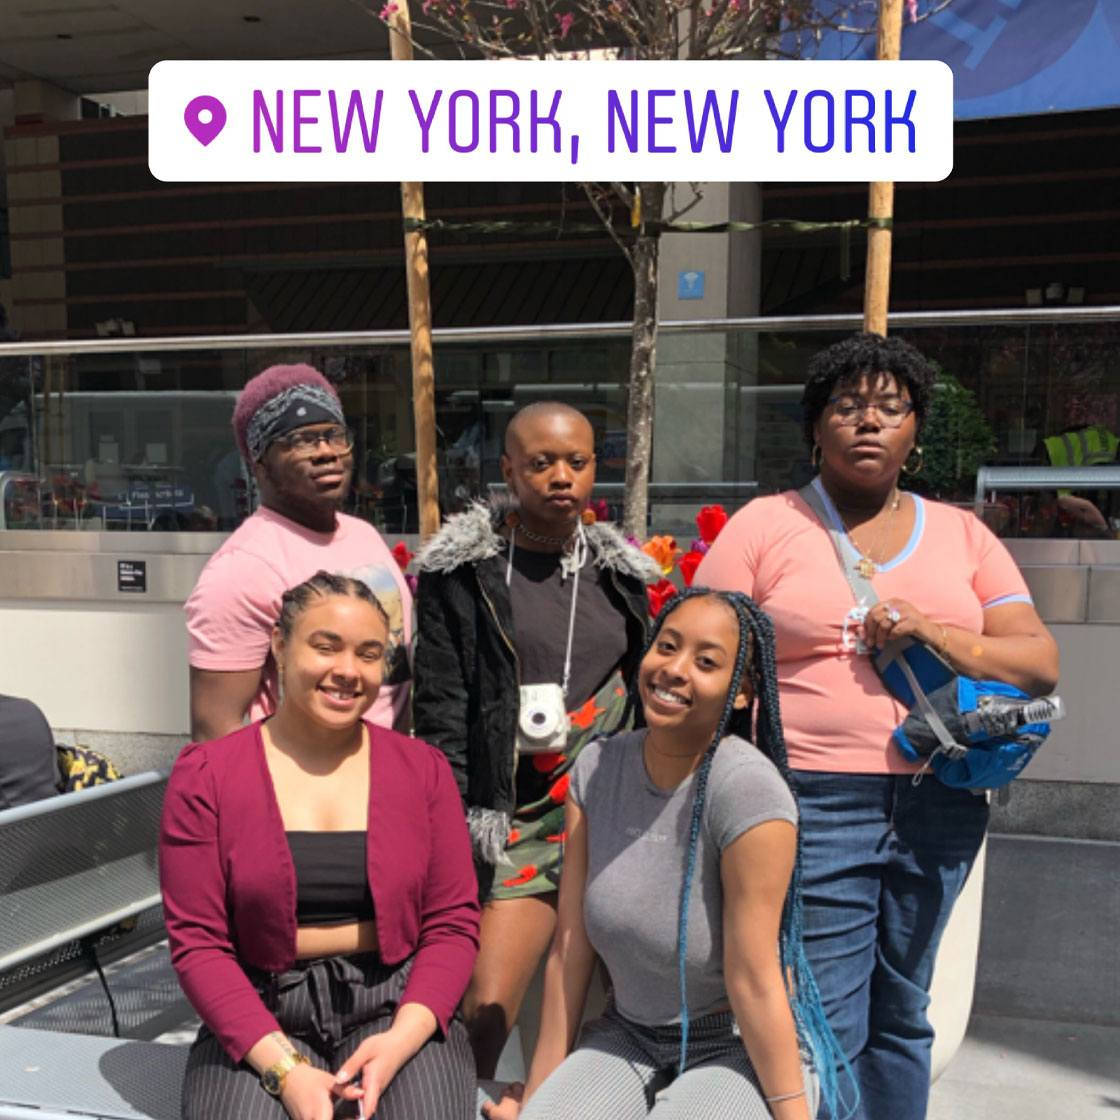 A group of 5 people posing with a text tag location new york, new york